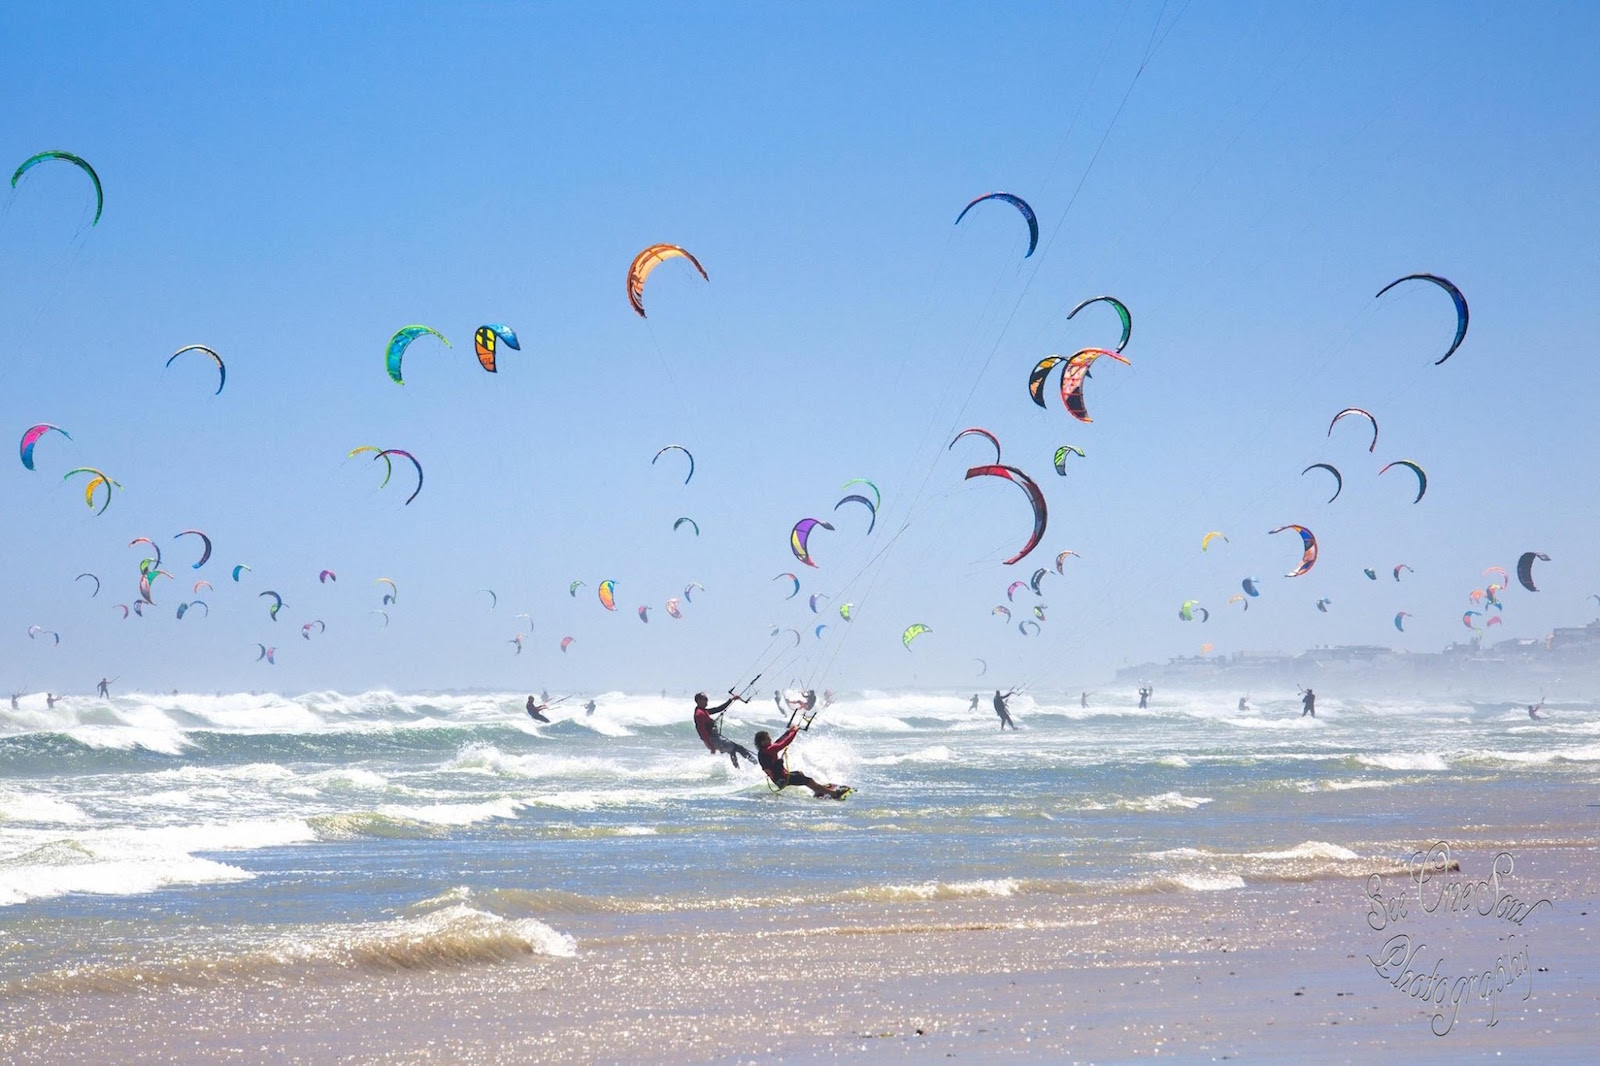 Attempting the Kitesurfing Guiness World Record in Cape Town in January 2016.